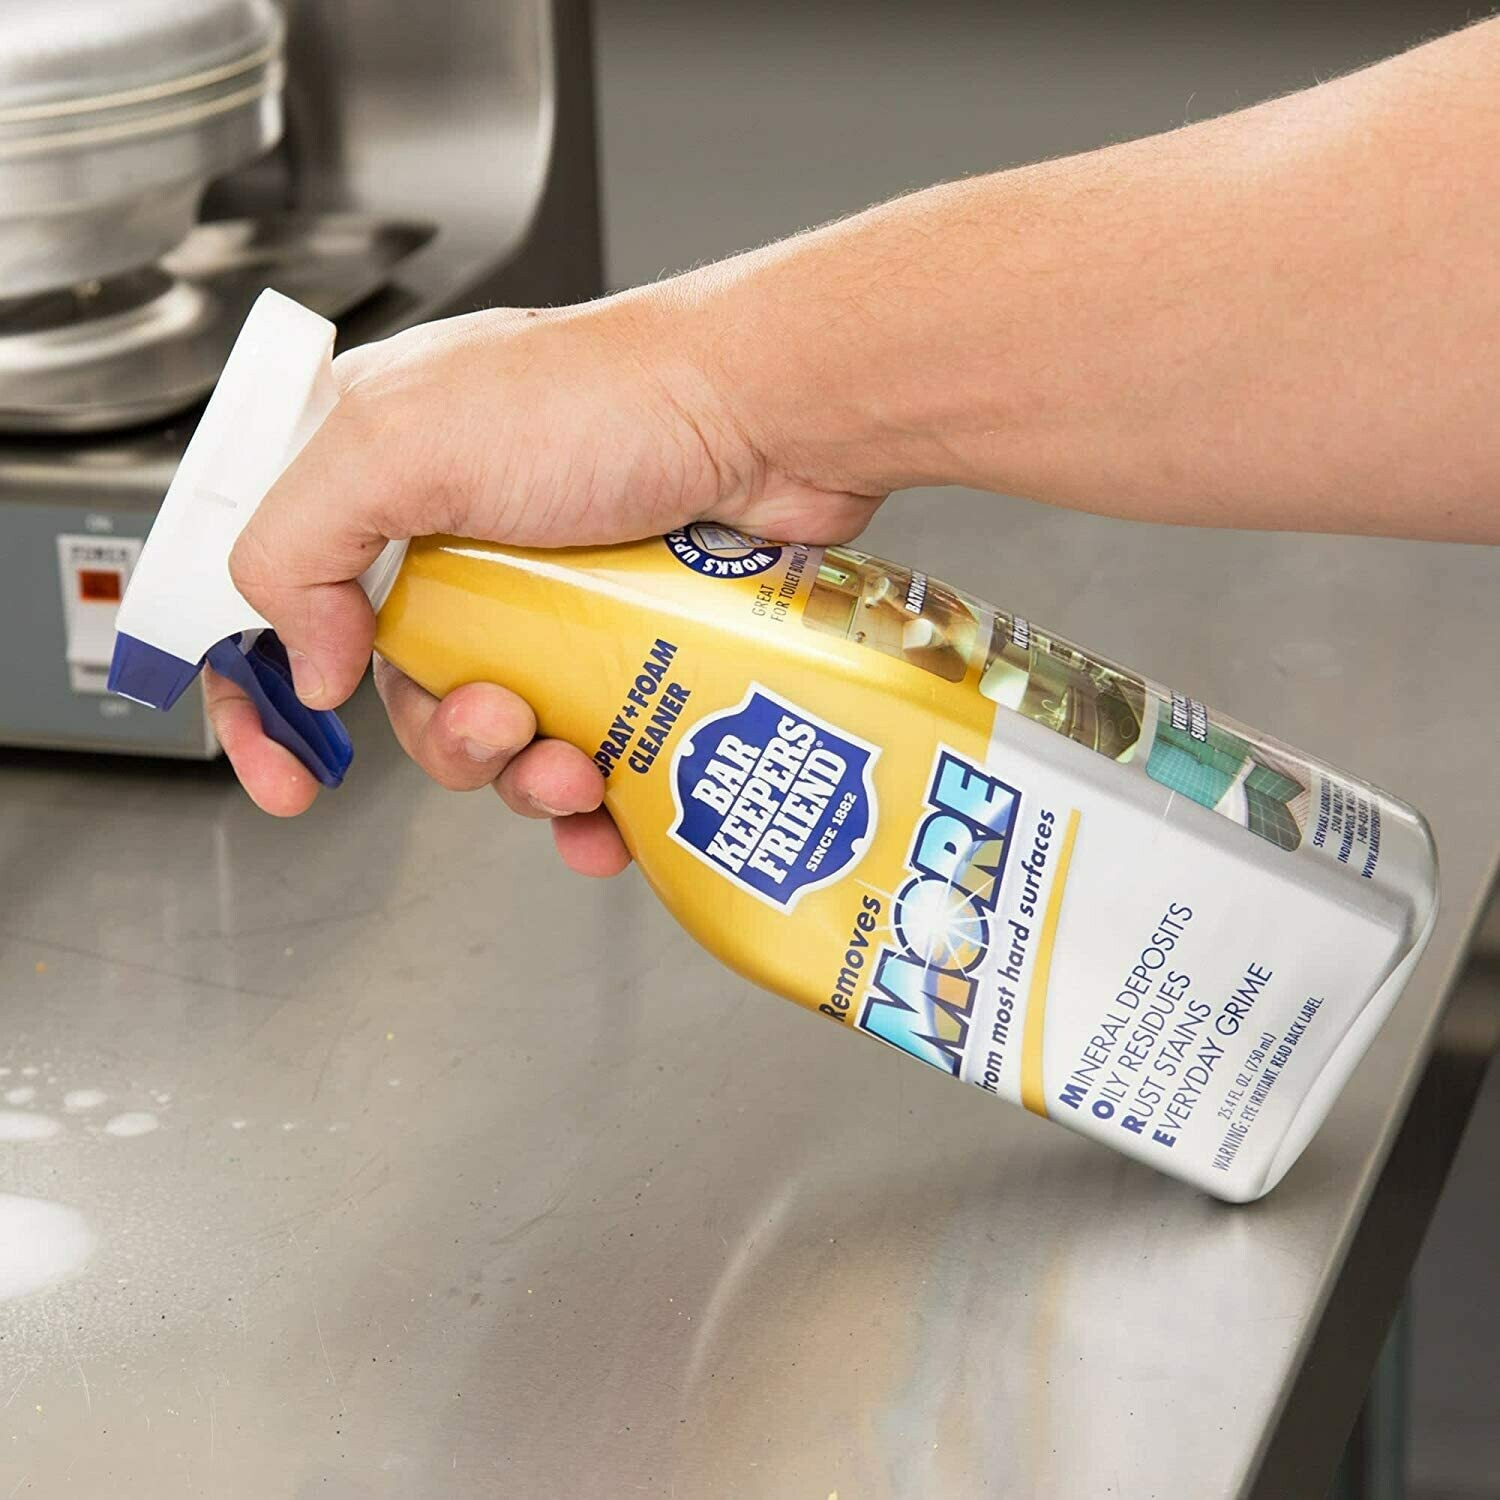 Bar Keepers Friend Spray Cleaner